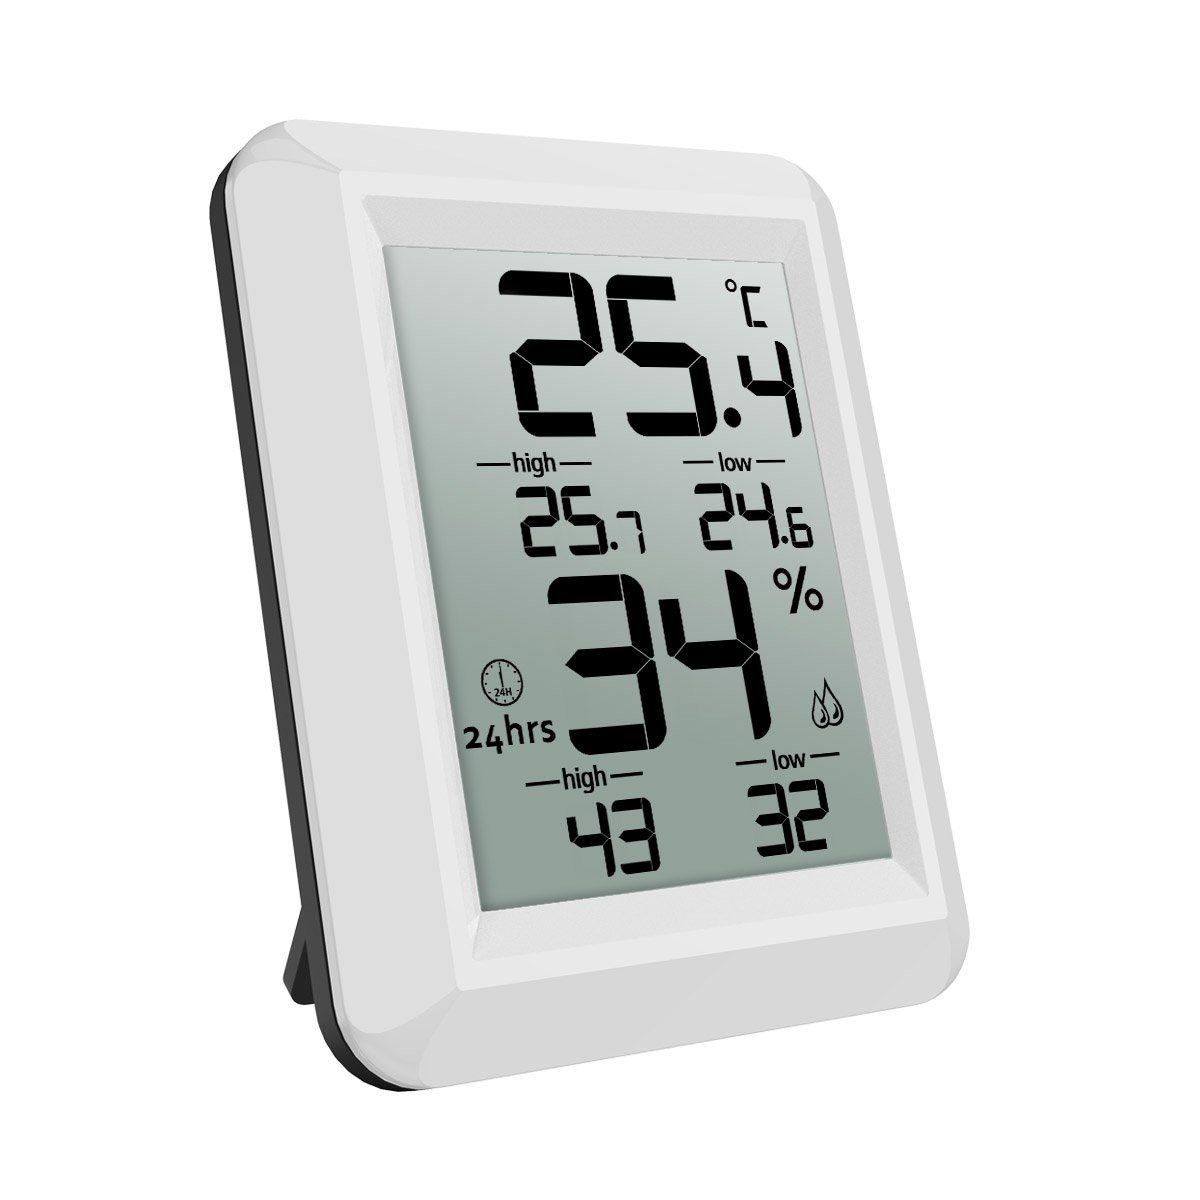 ORIA Temperature Humidity Monitor, Digital Hygrometer Thermometer, Thermometer Hygrometer Indoor, ℃/℉ Switch, LCD Screen, MIN/MAX Records, for Warehouse, Home, Office, Greenhouse, Babyroom